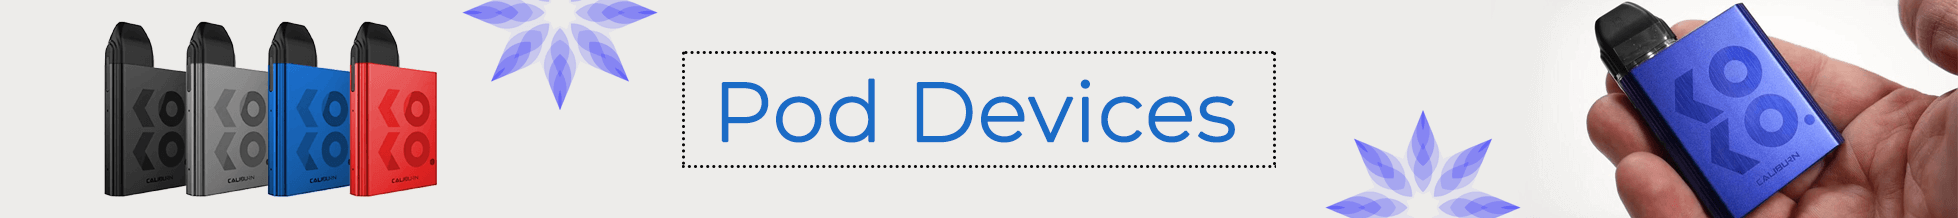 pod-devices-category-banner.png